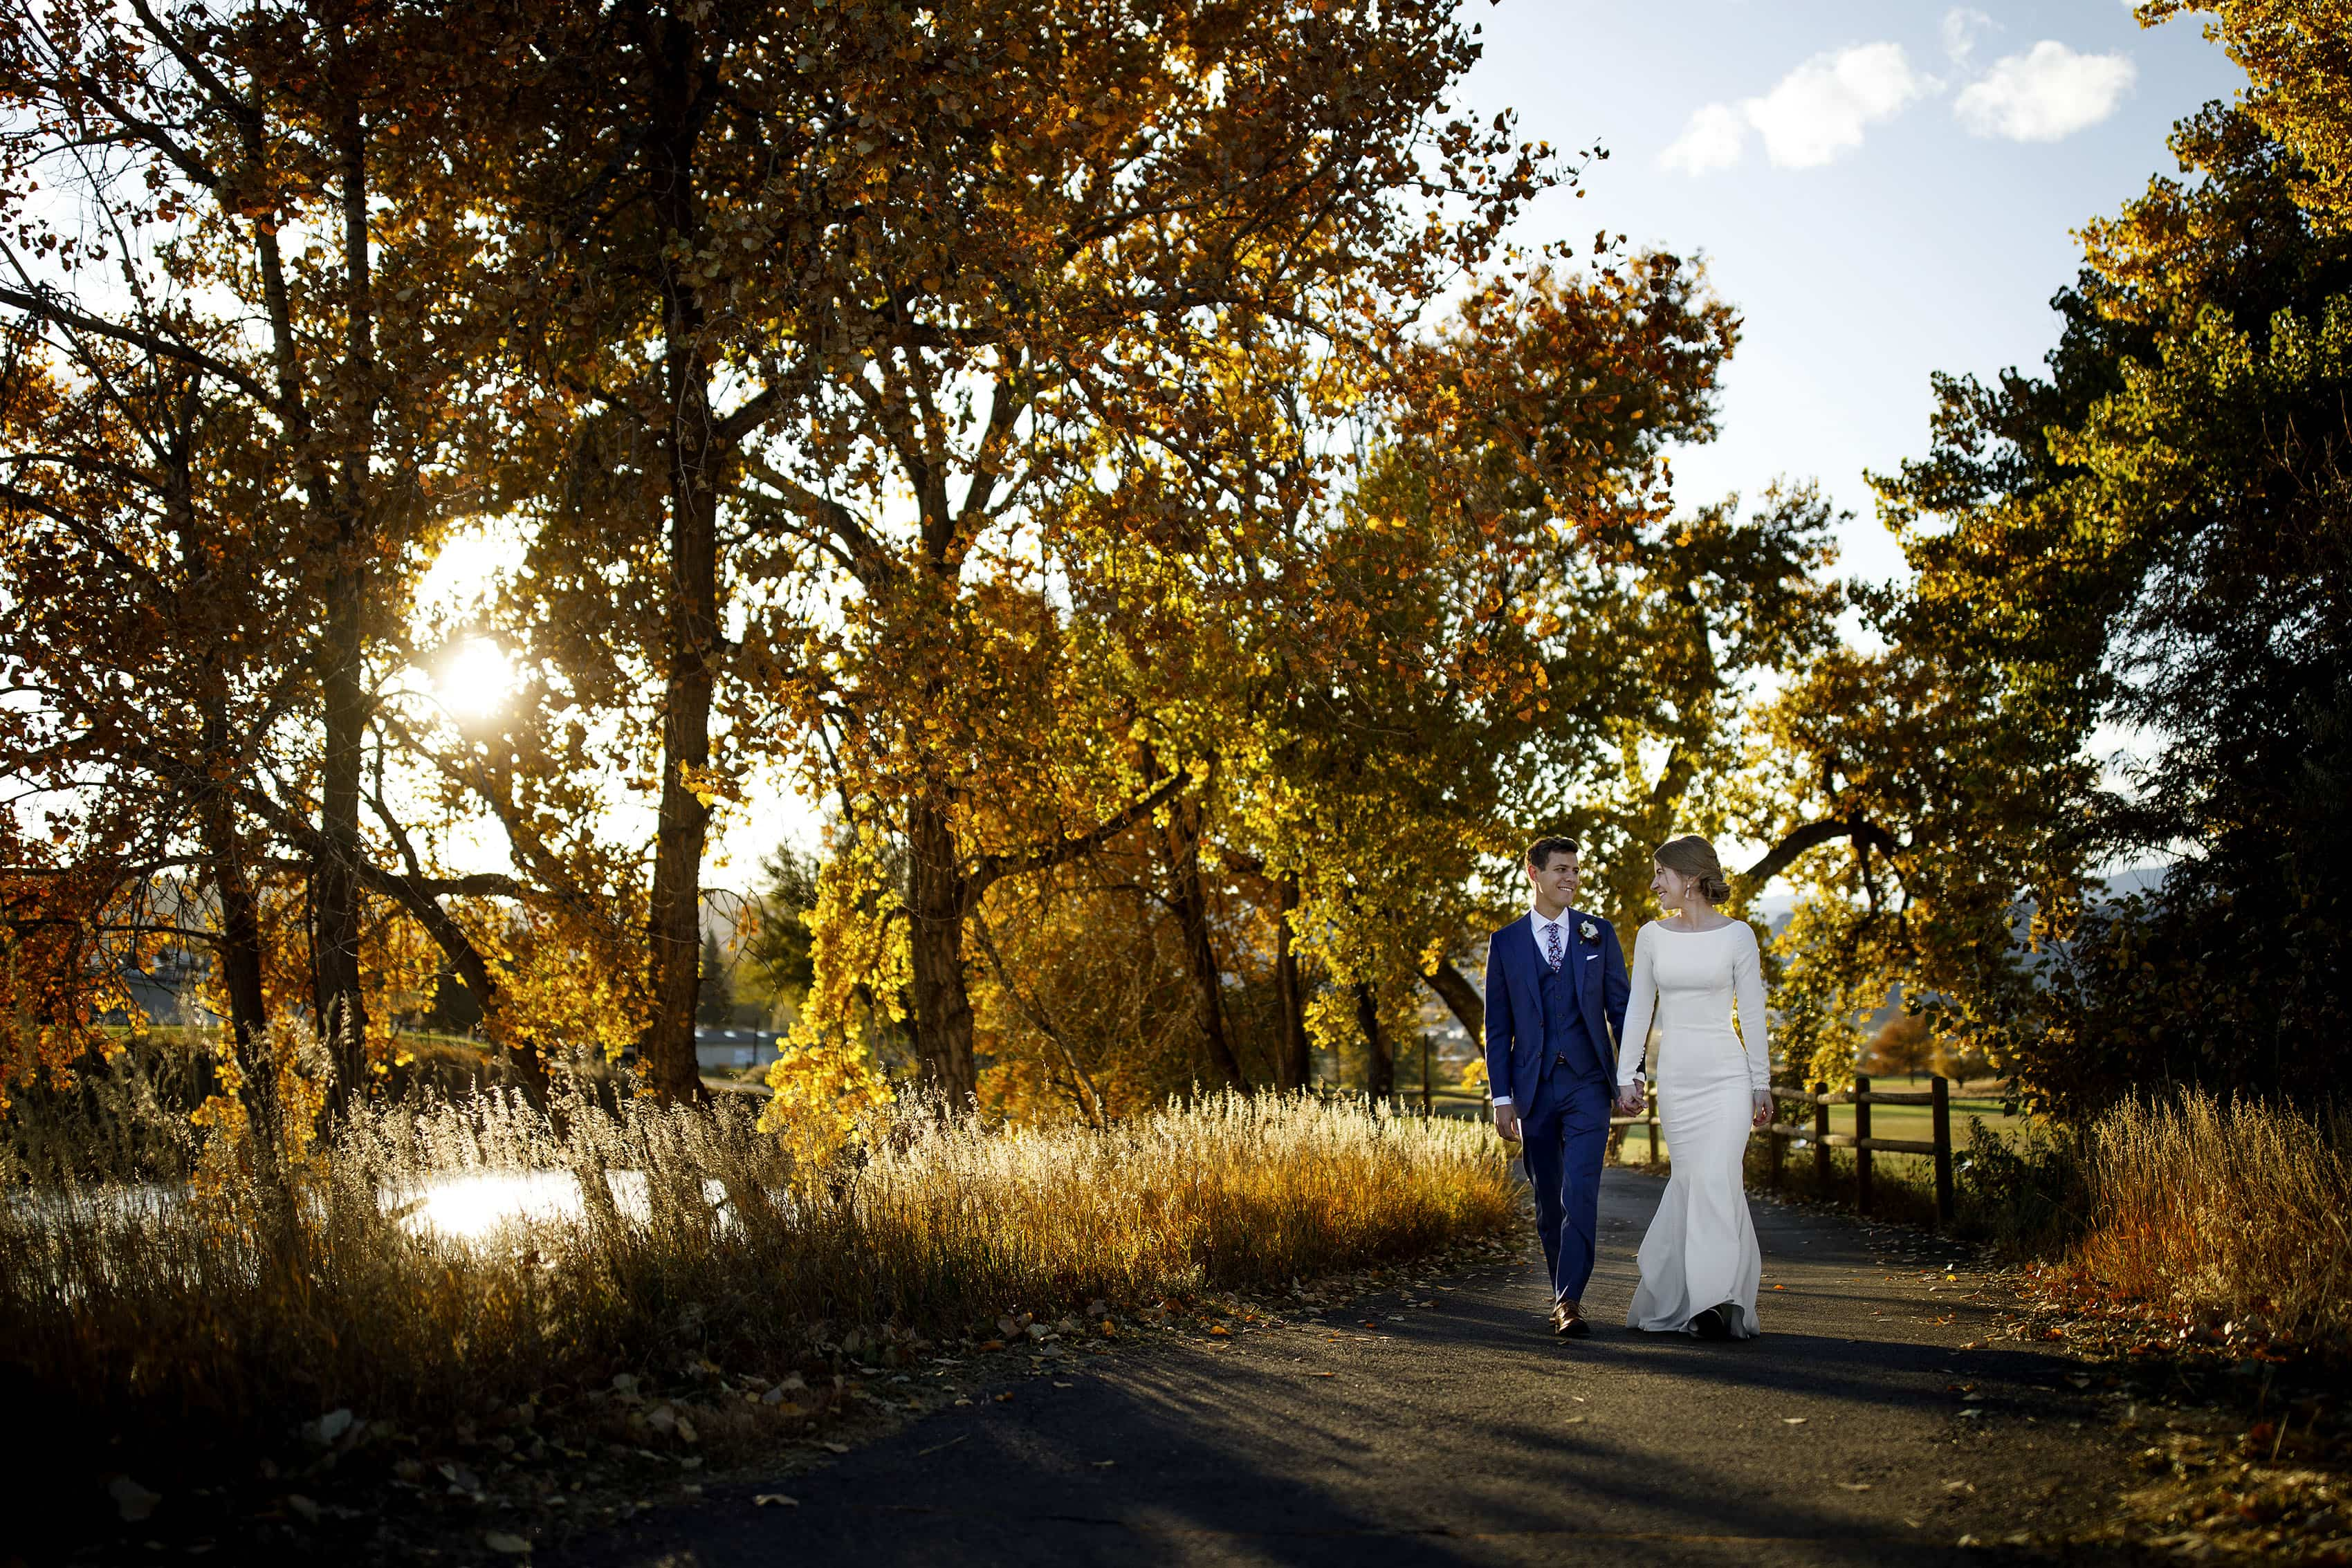 The newlyweds walk together near a colorful tree at The Vista at Applewood Golf Course on their wedding day